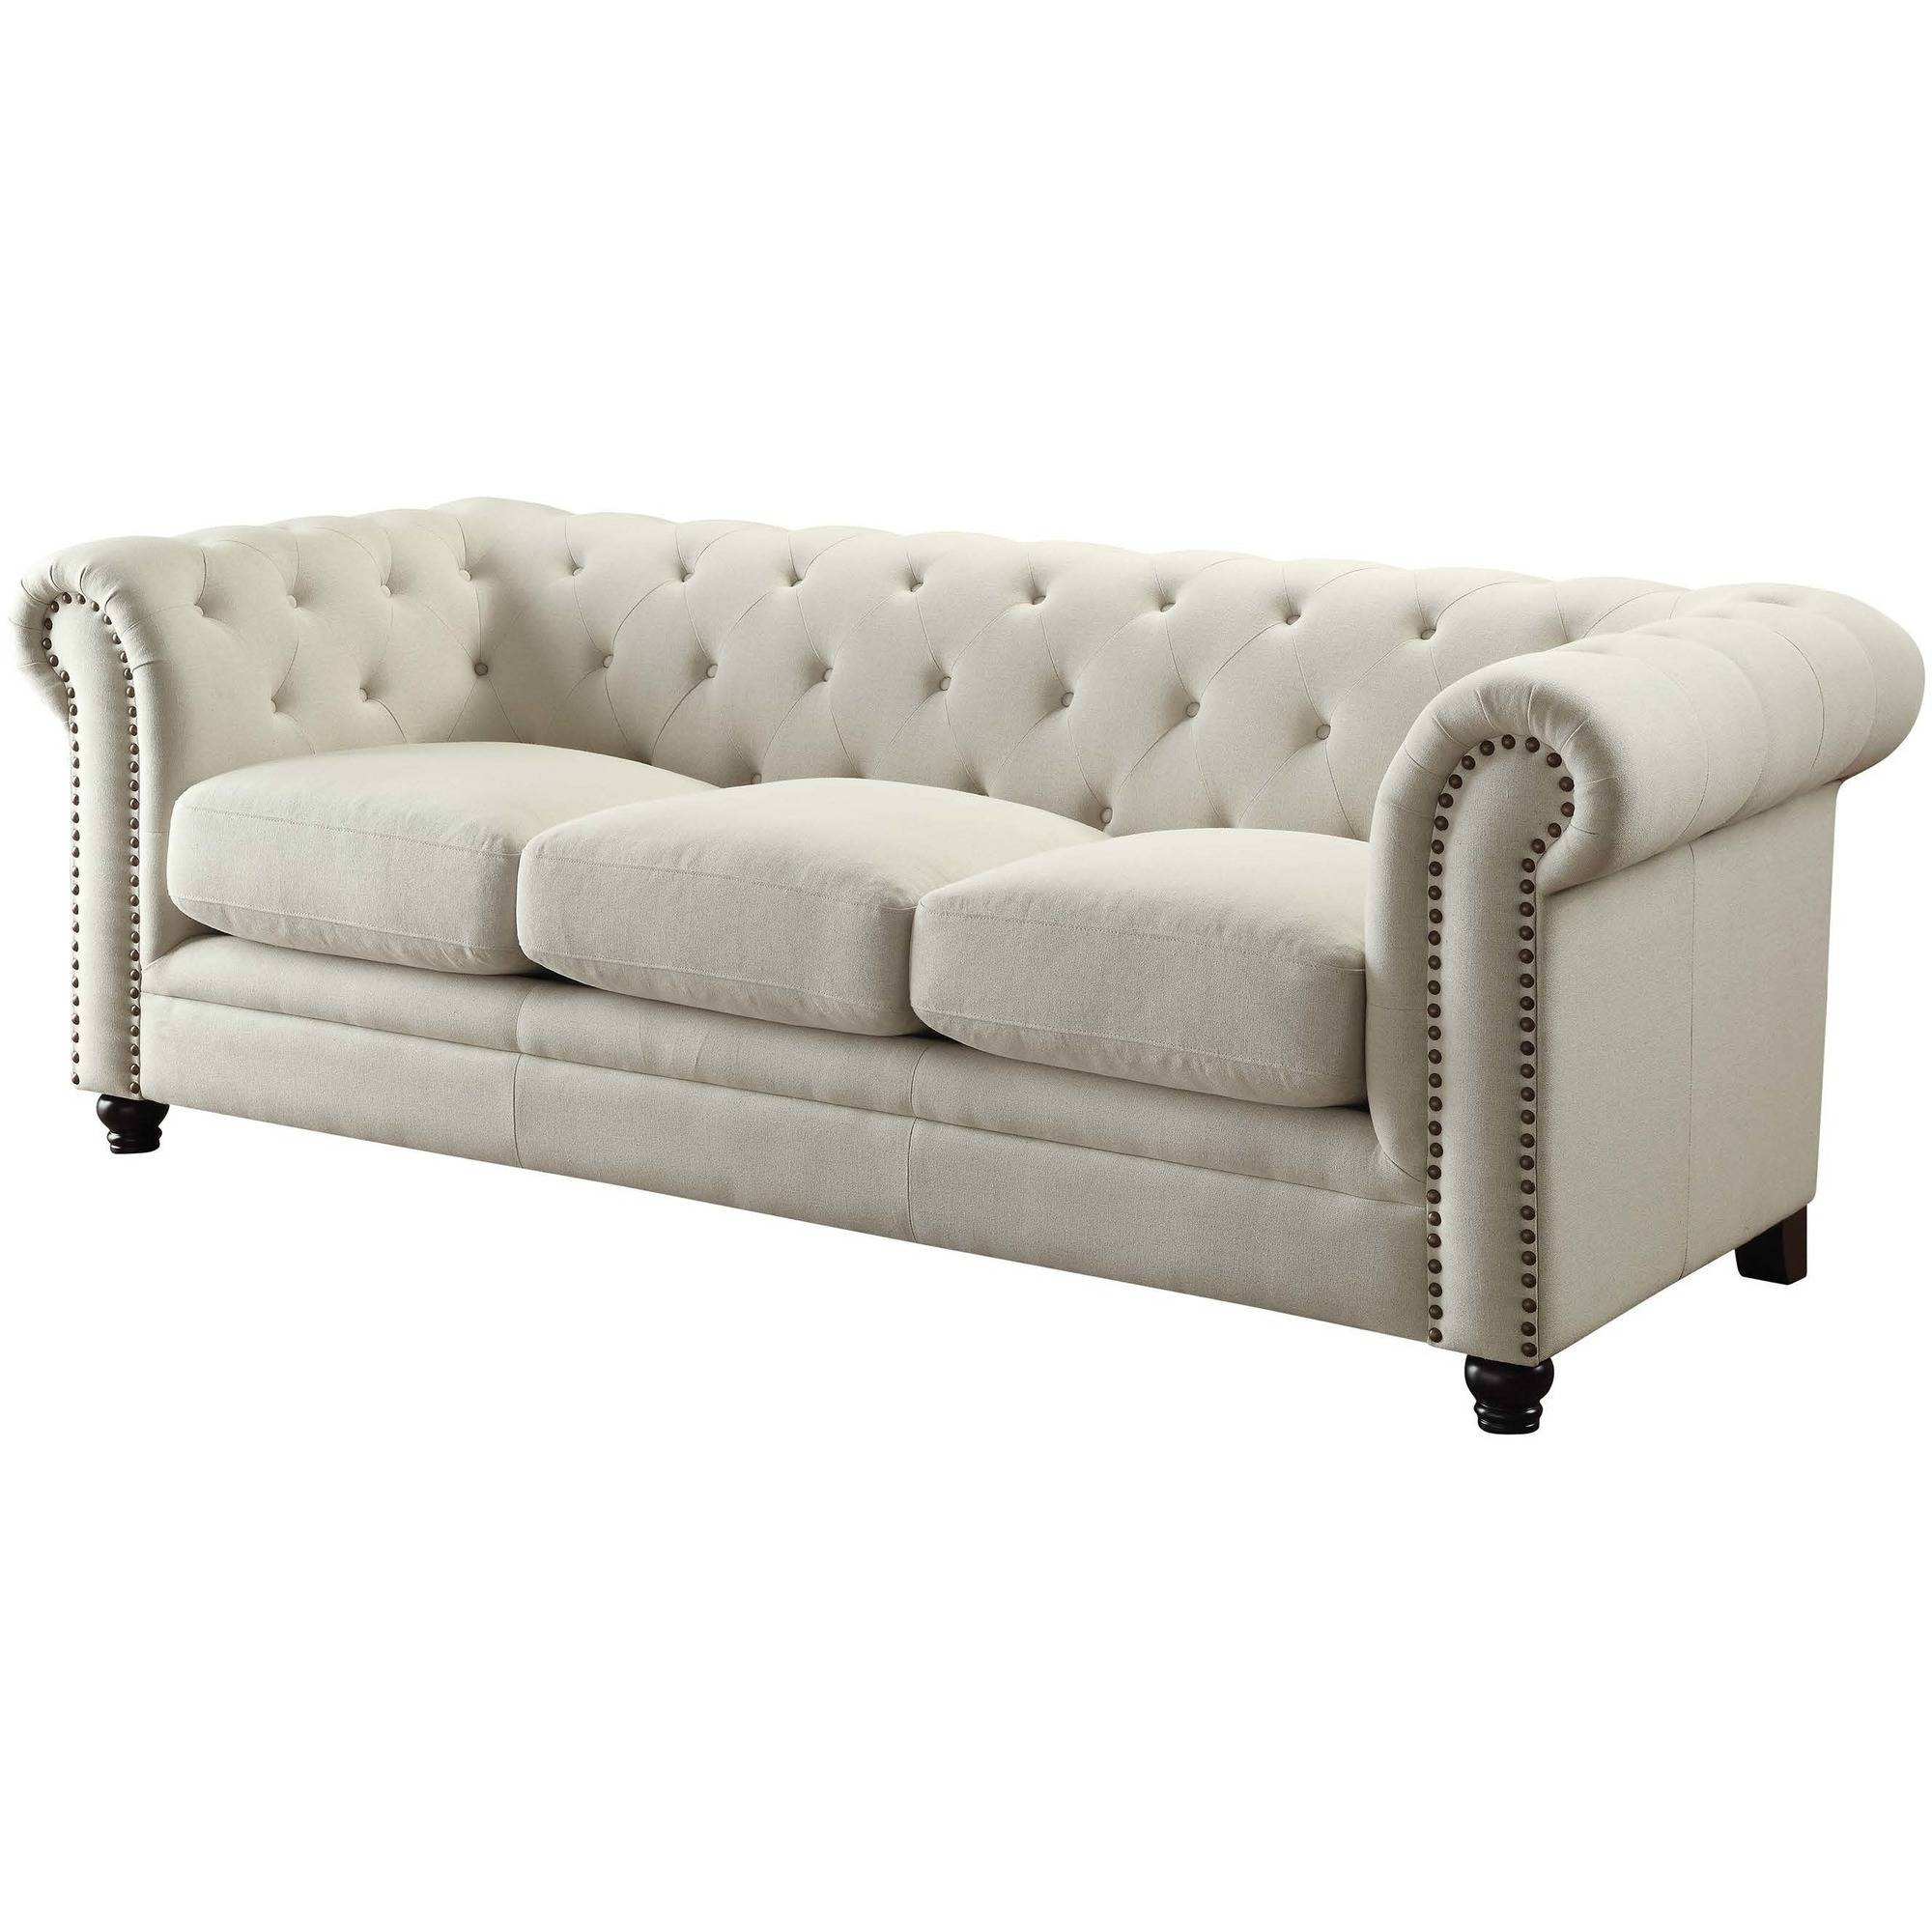 Coaster Company Roy Sofa, Oatmeal